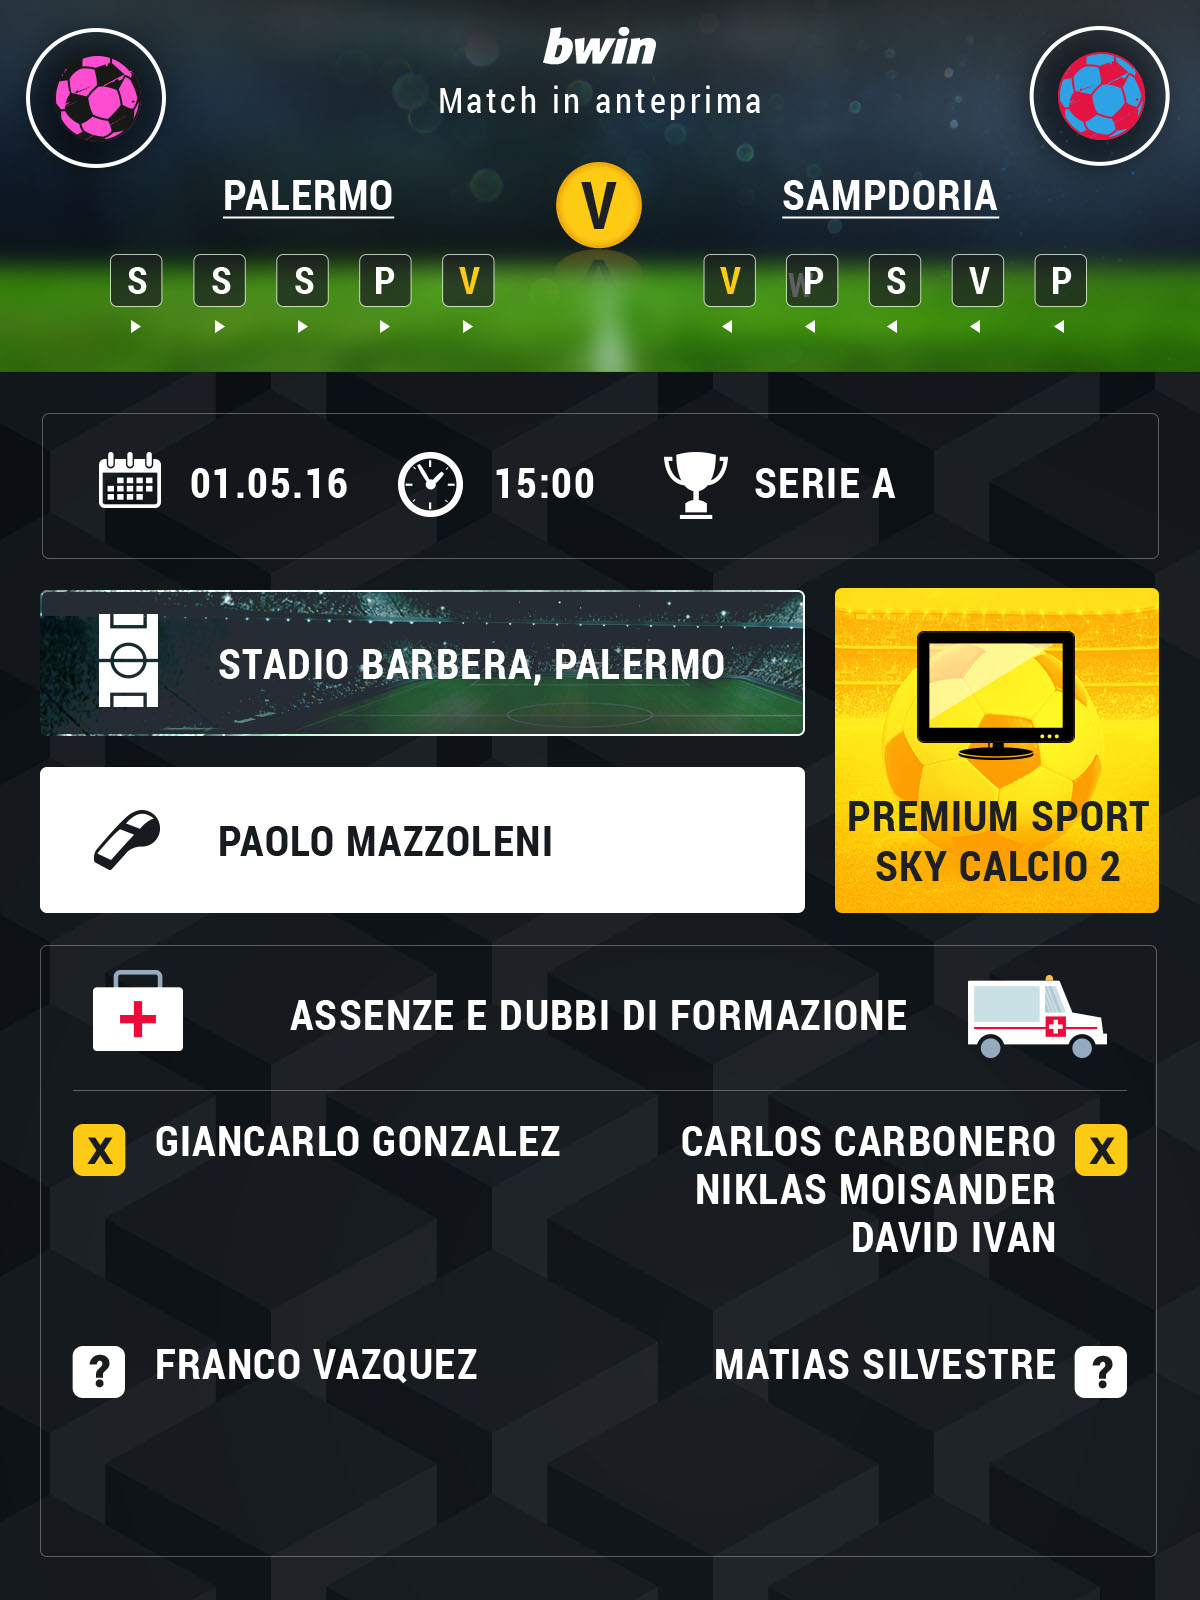 Palermo-Sampdoria preview